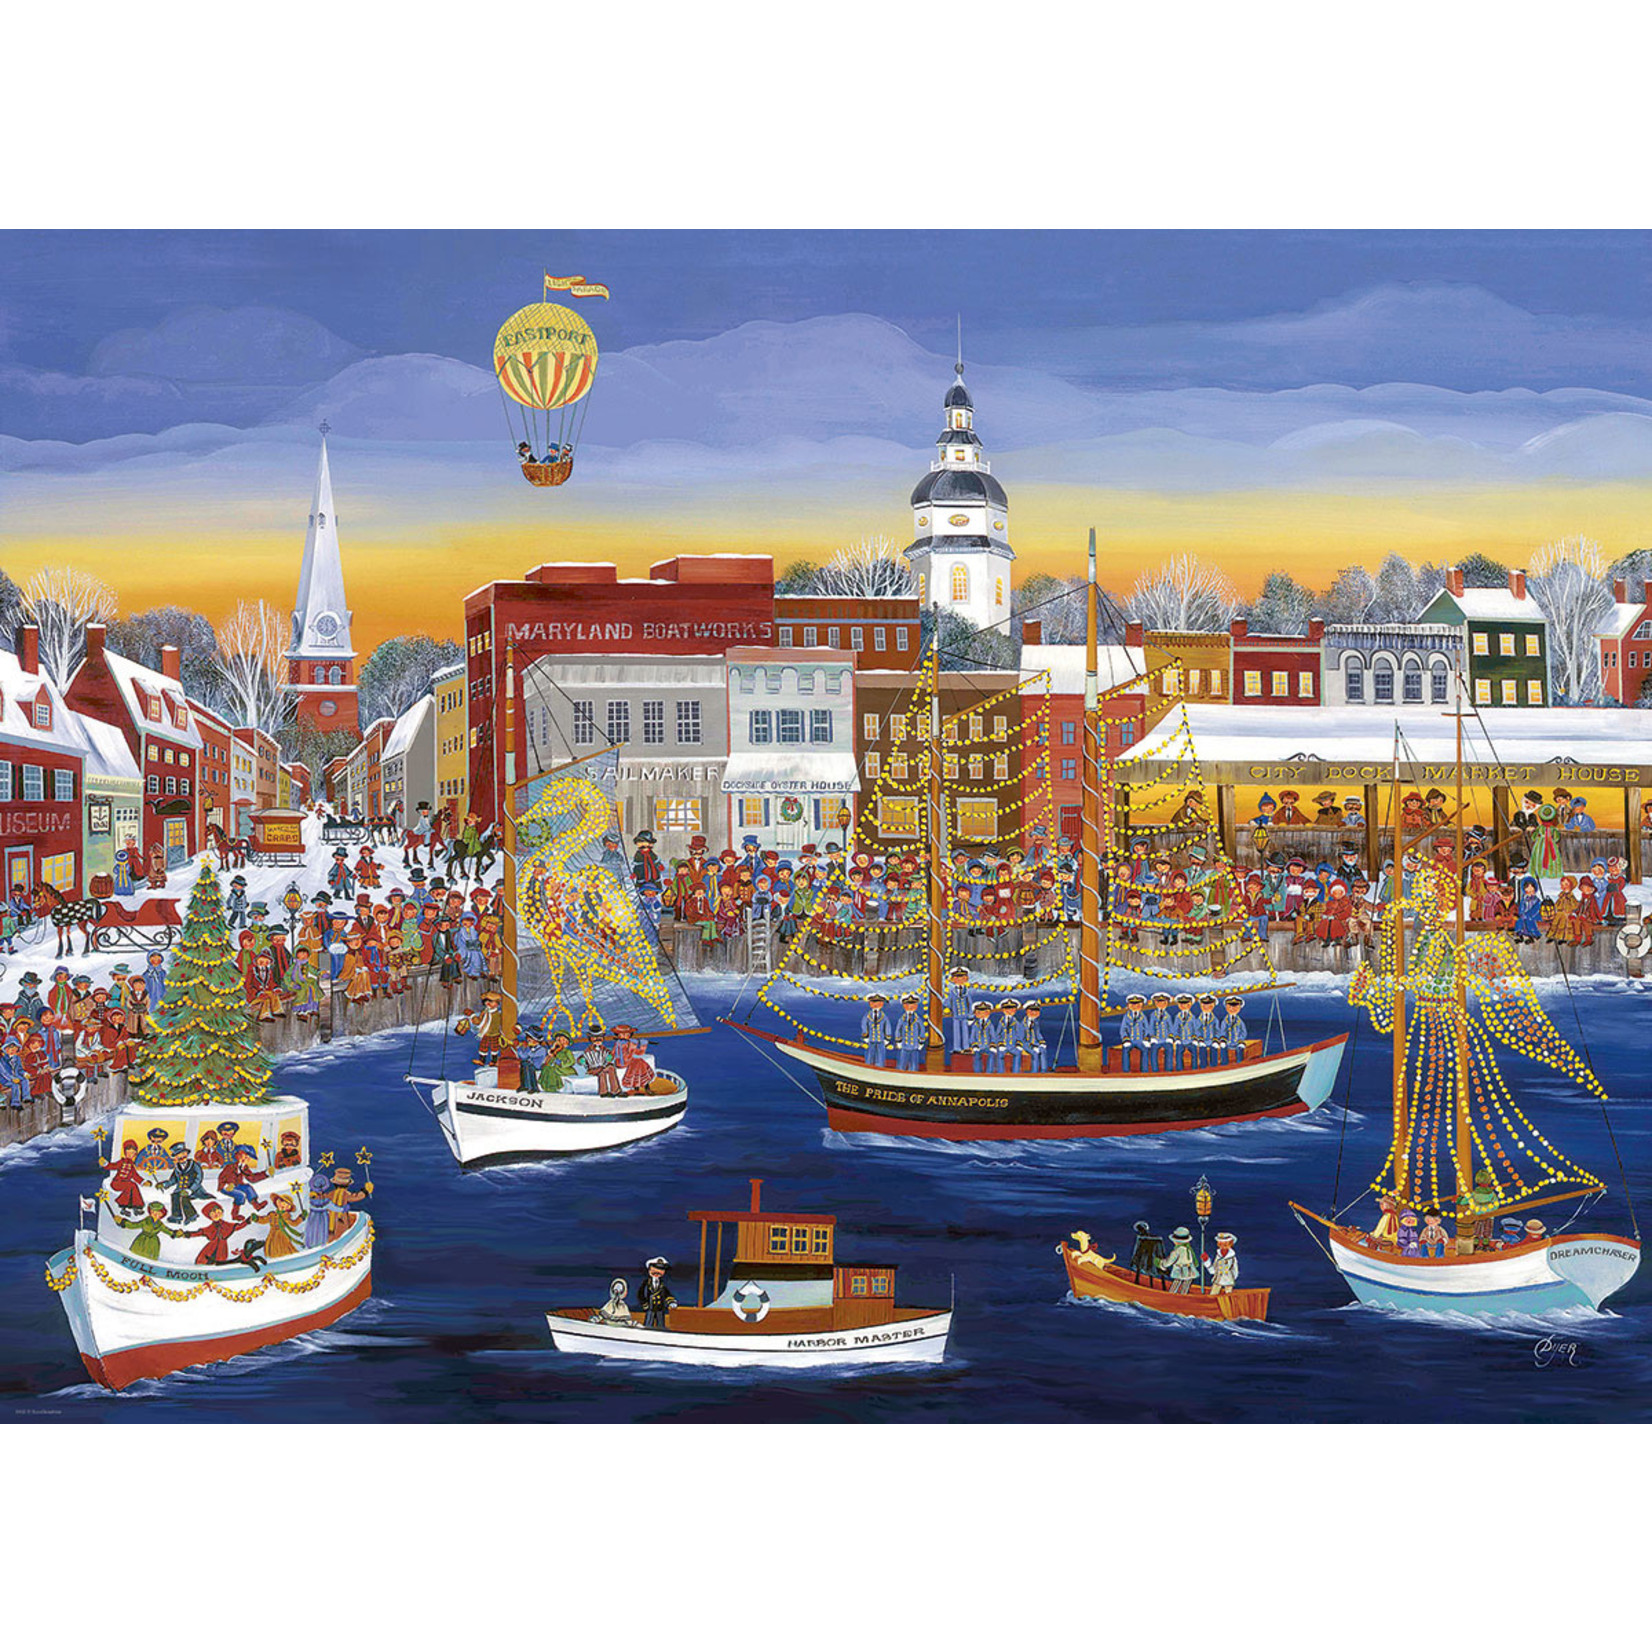 EuroGraphics Puzzles Seaside Holiday - C. Dyer (300pc)